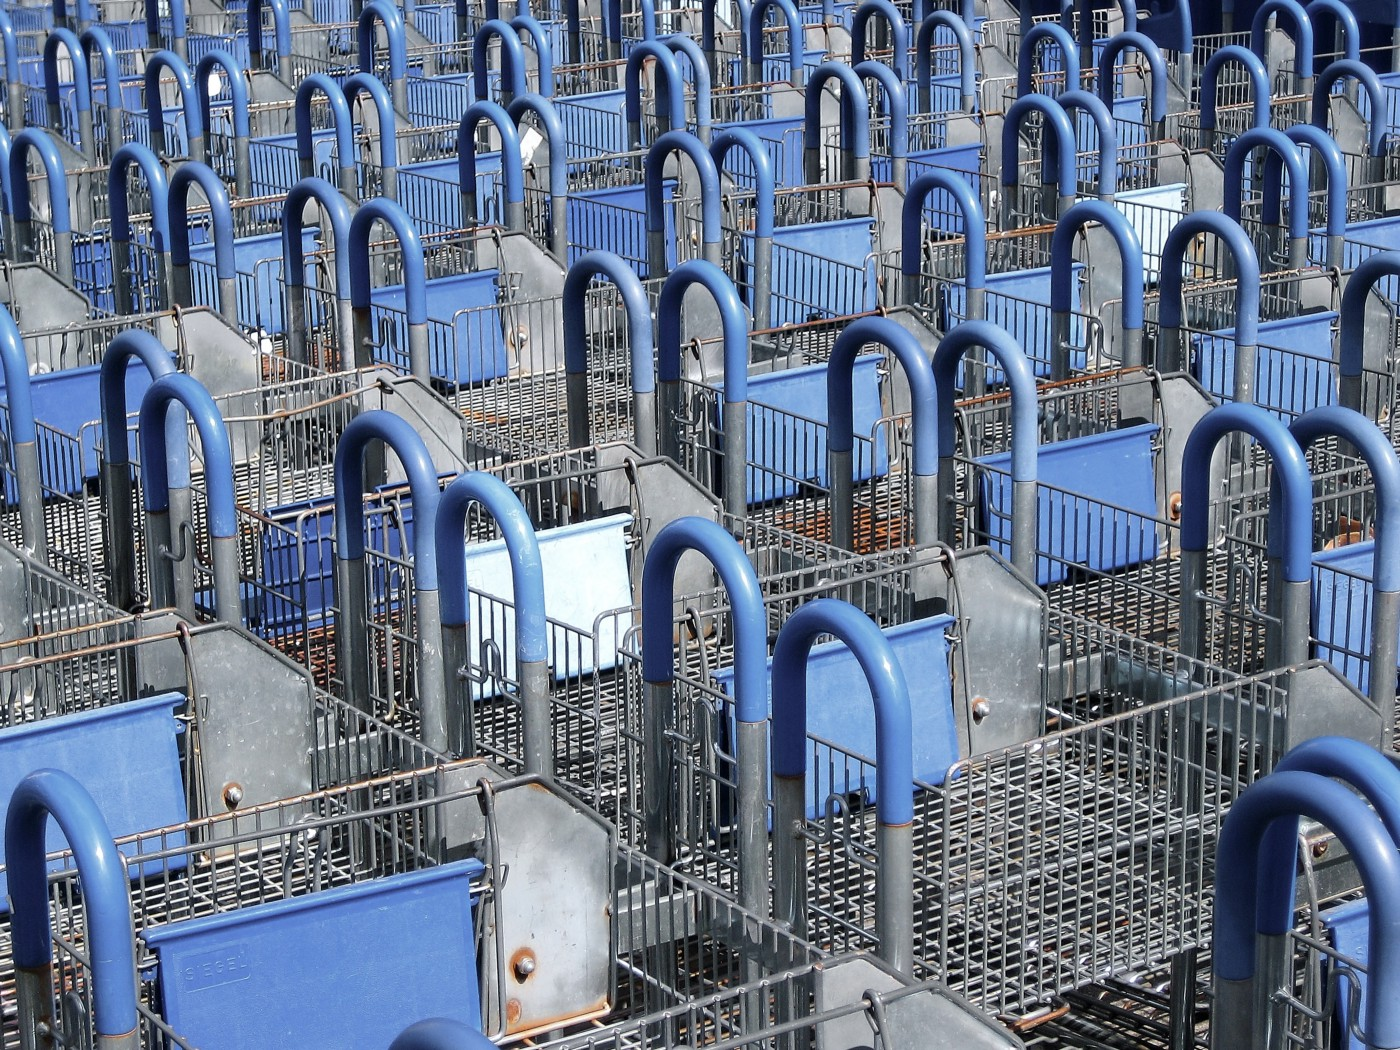 Hundreds of shopping carts lined up organized, blue plastic covering gray metal. A consumer's heaven.